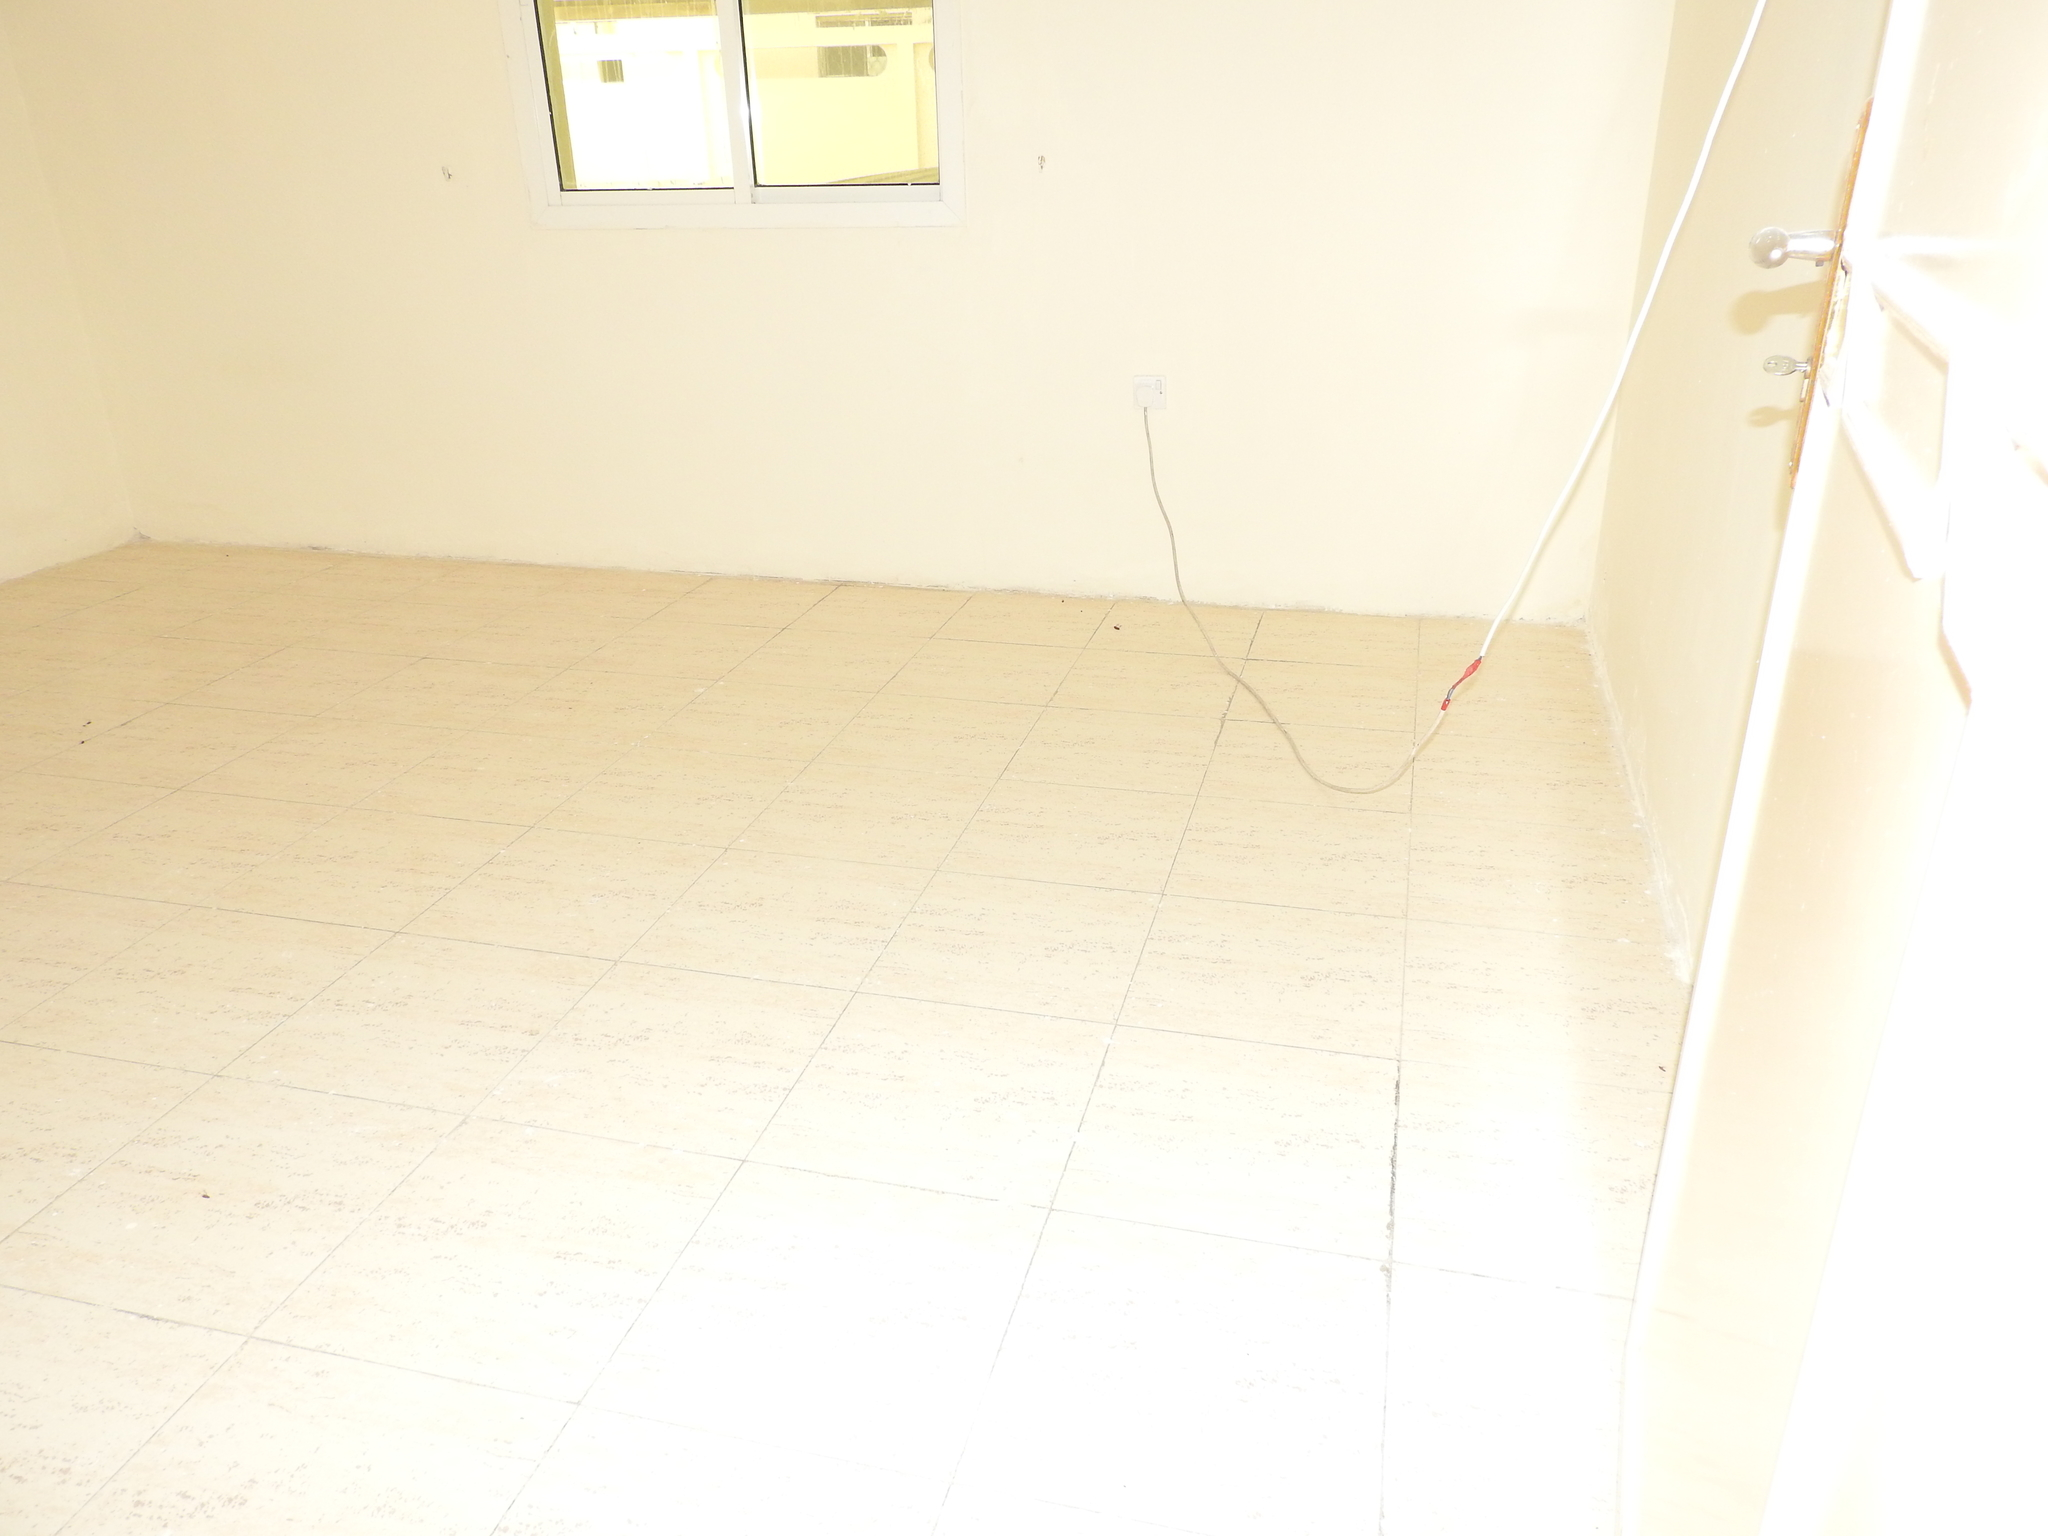 2 BEDROOM SPACIOUS FLATS AVAILABLE IN OLD AIRPORT